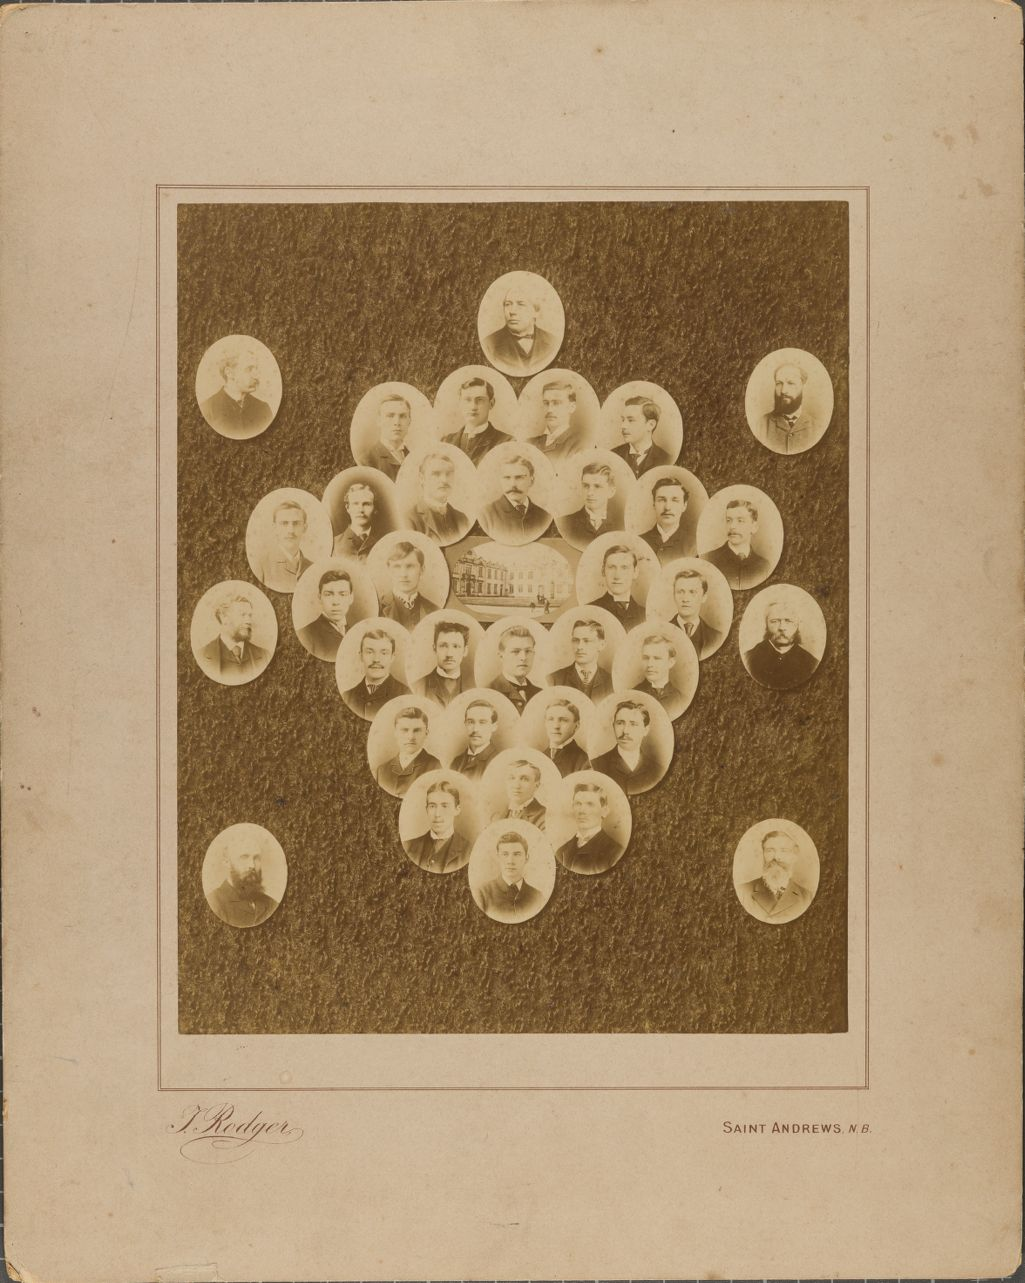 [Group portrait, St Andrews University]